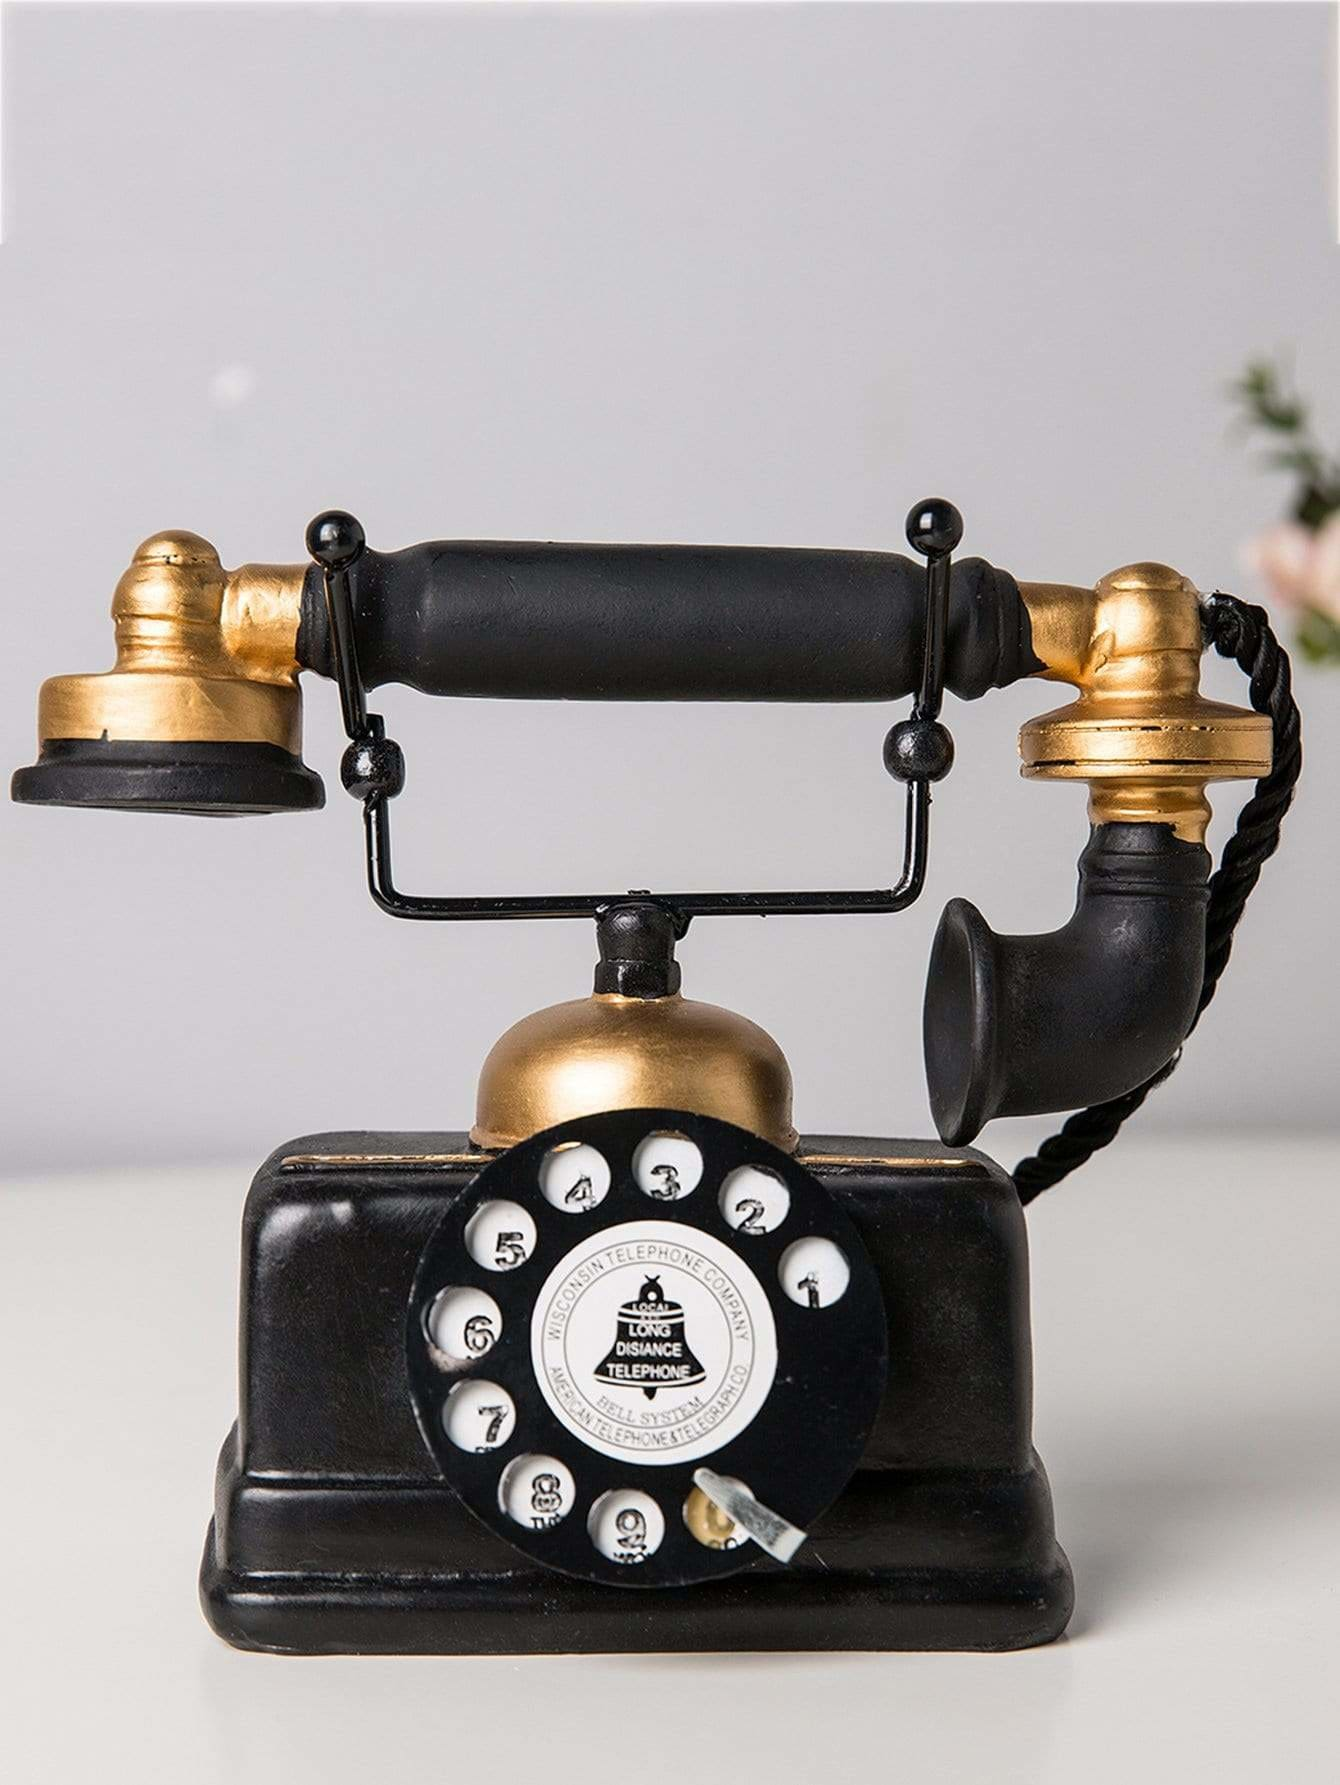 Old Telephone Decorative Object - Displays